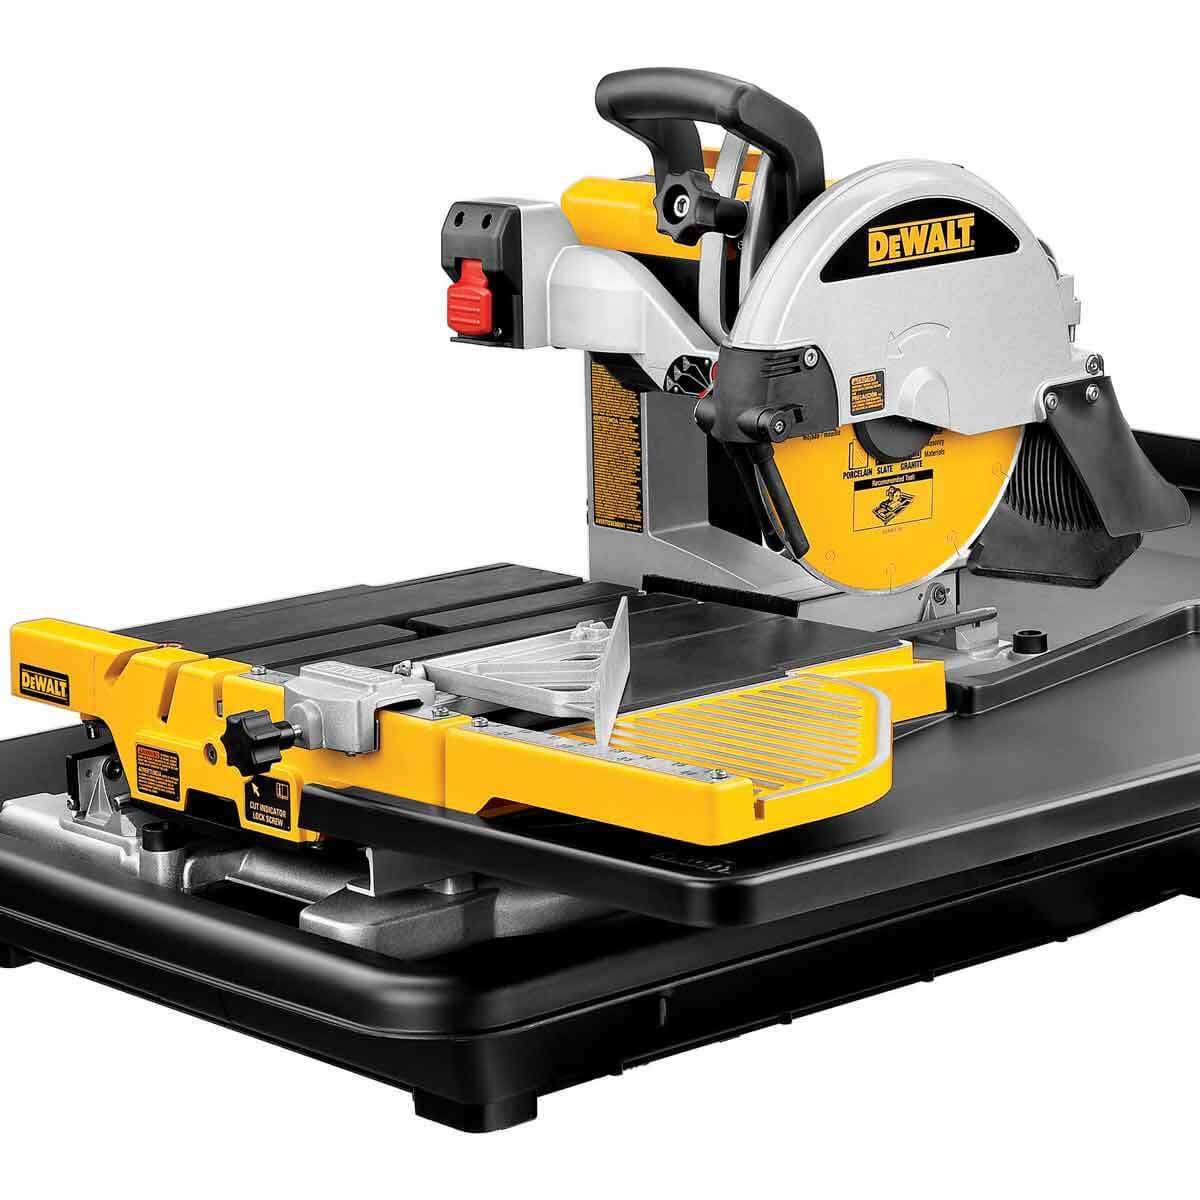 dewalt d24000 tile saw close up